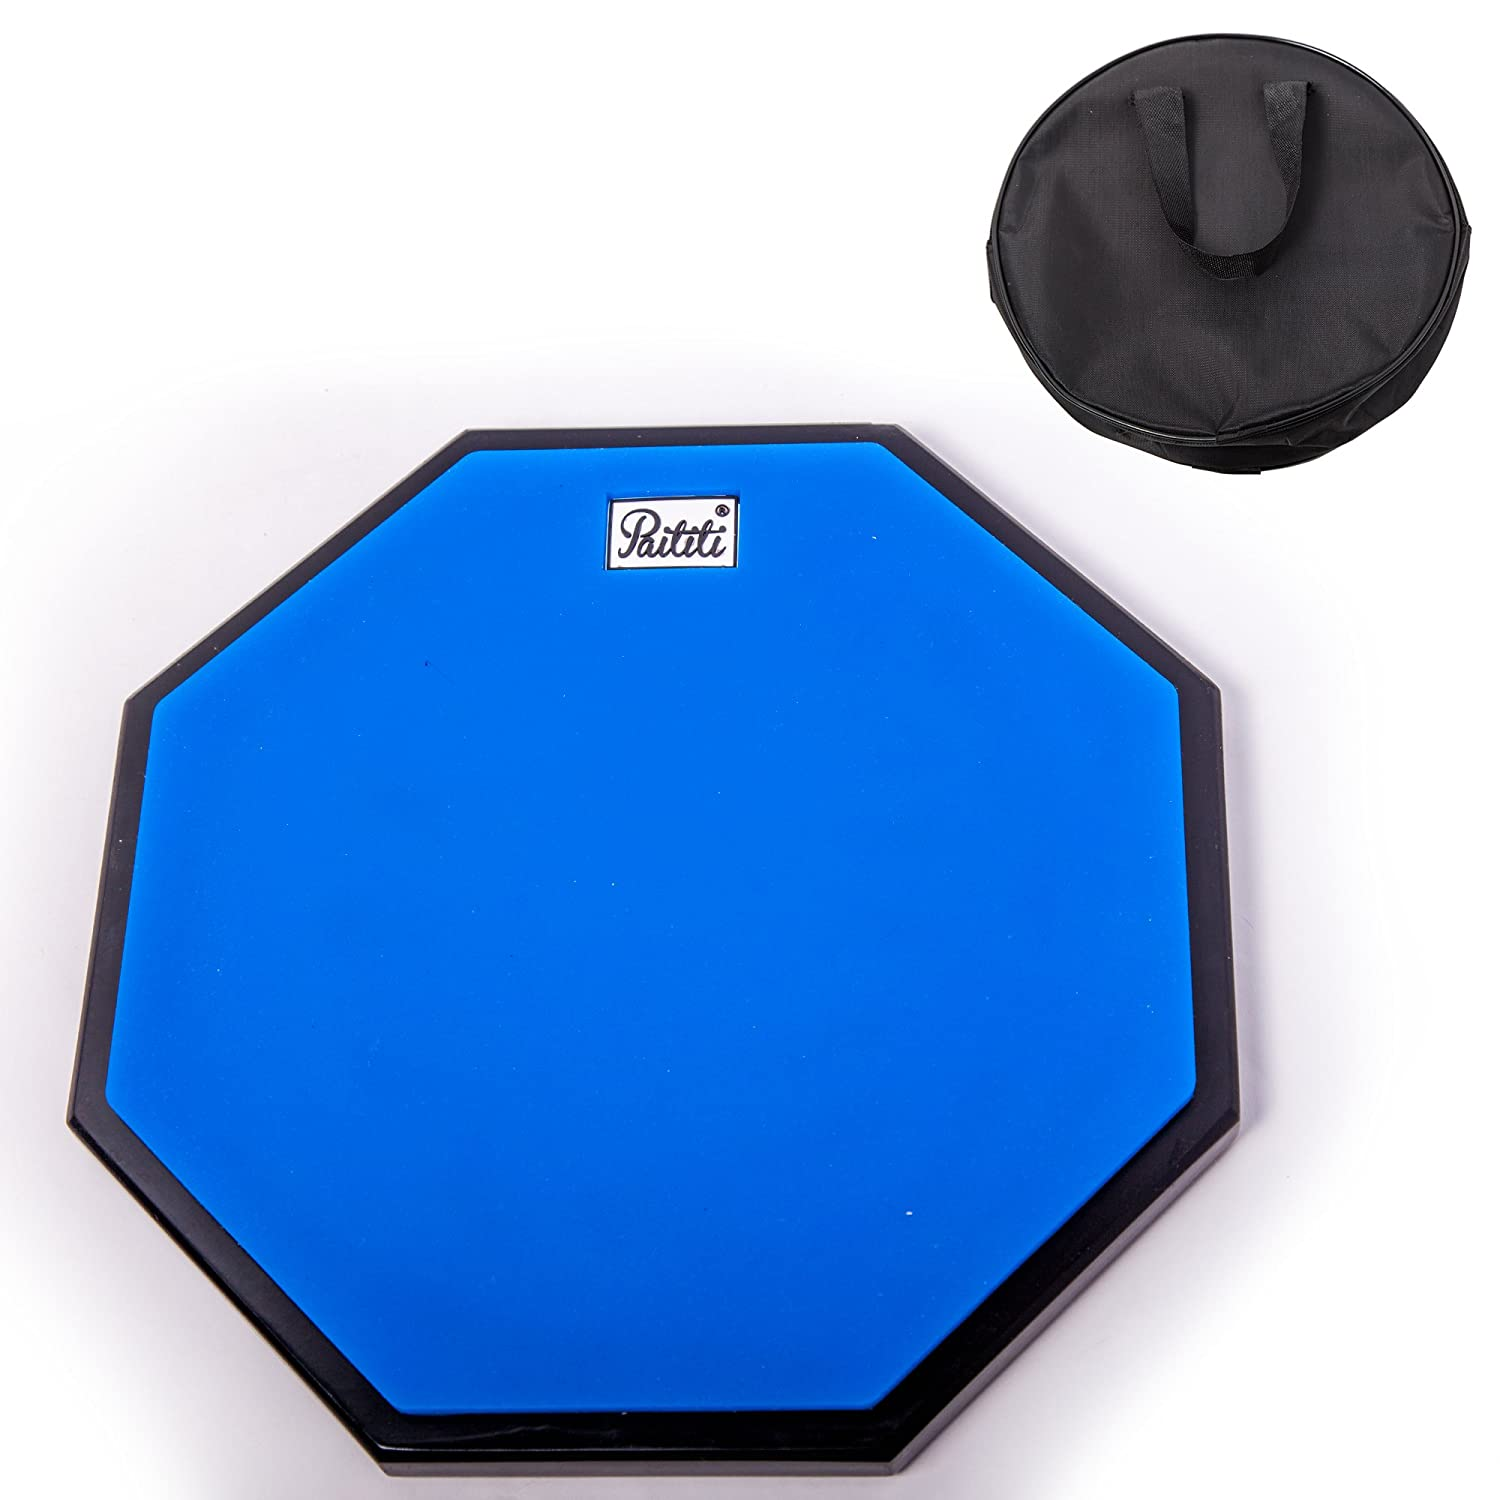 PAITITI 10 Inch Silent Portable Practice Drum Pad Octagonal Shape with Carrying Bag Blue Color